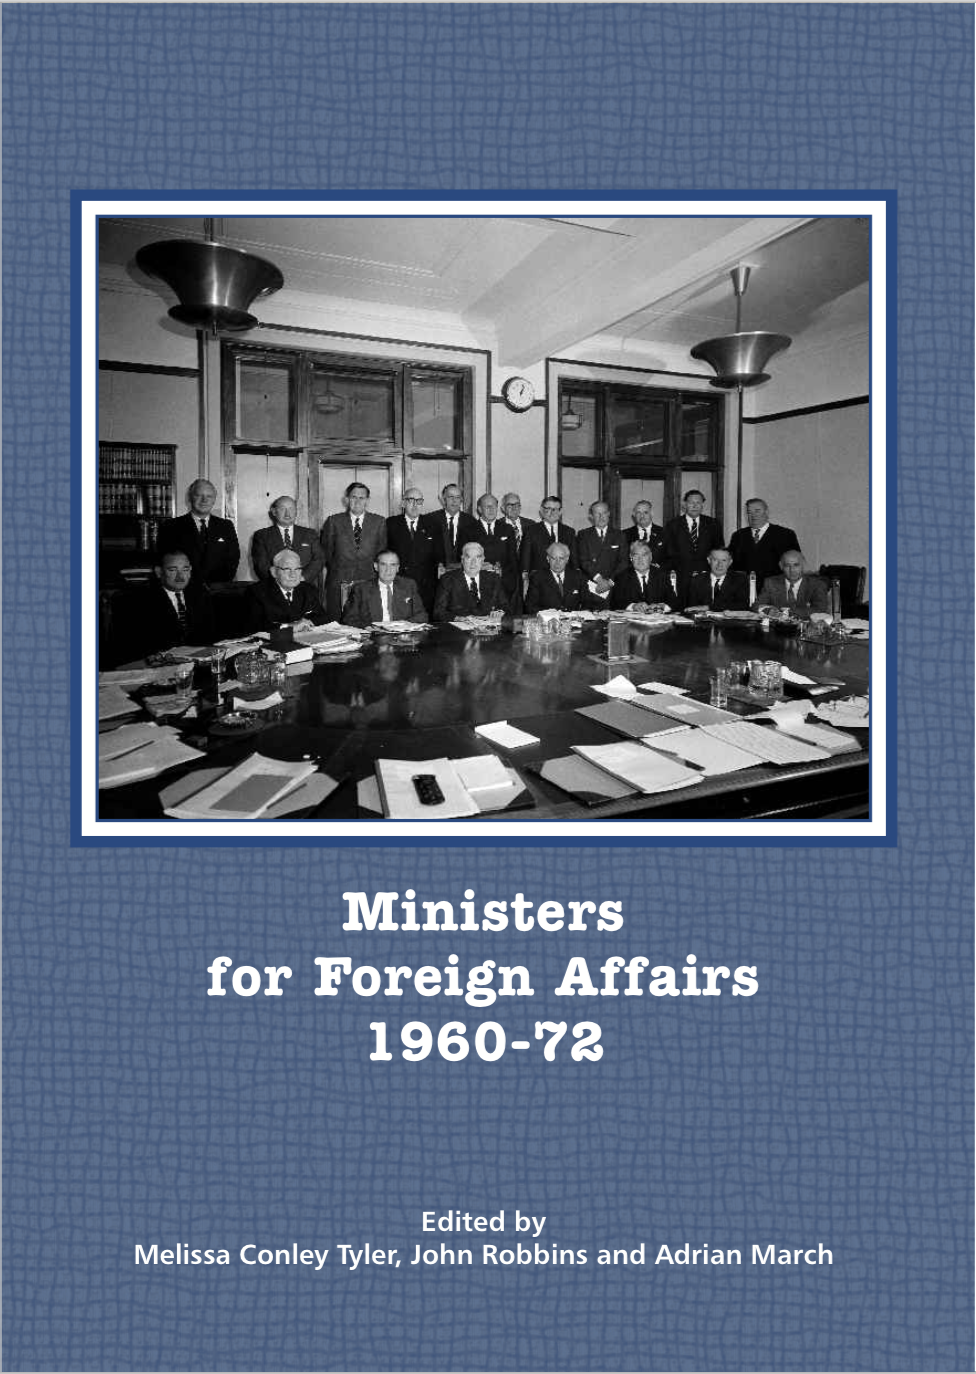 Ministers 1960 cover